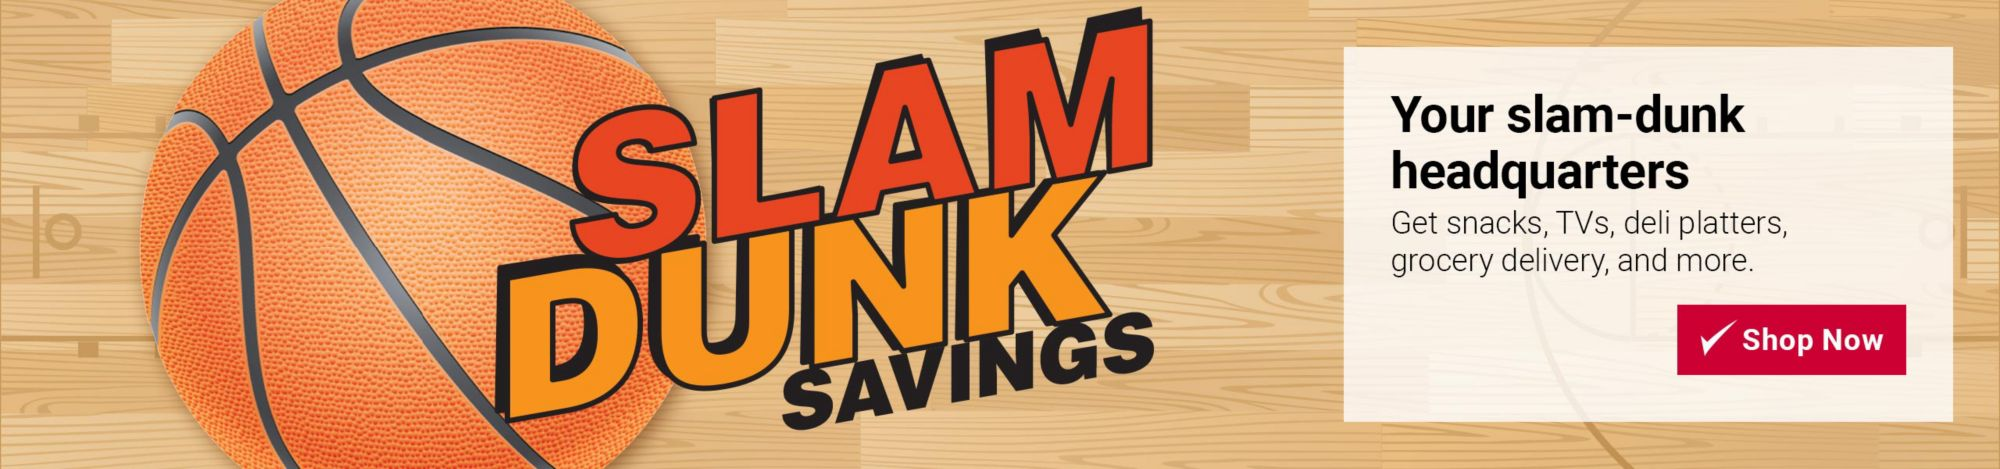 Your slam dunk savings headquarters. Get snacks, TVs, deli platters, grocery delivery, and more. Click here to shop all slam dunk savings.